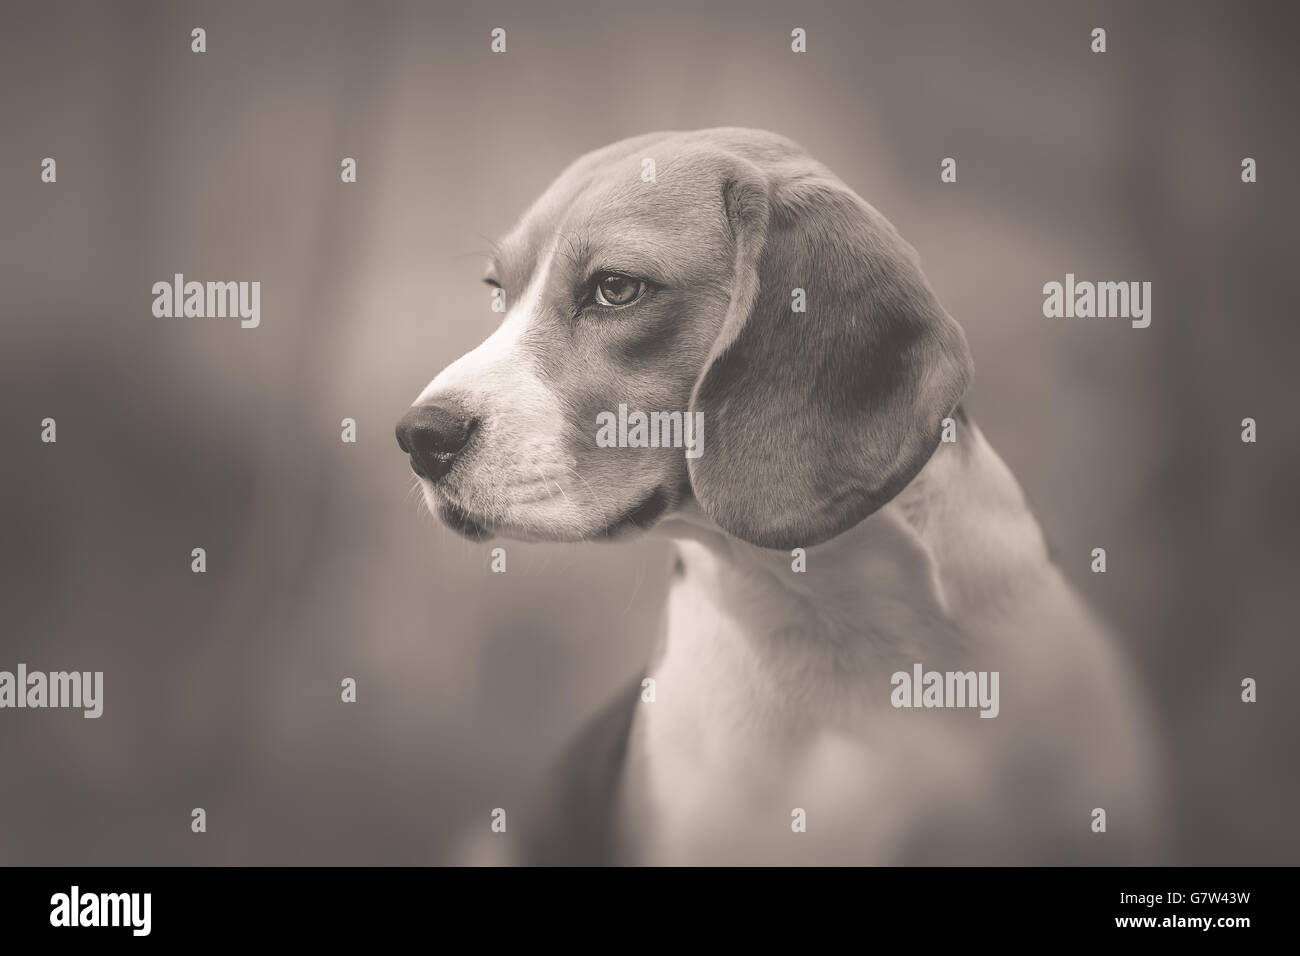 Monochrome portrait of beautiful Beagle dog - Stock Image